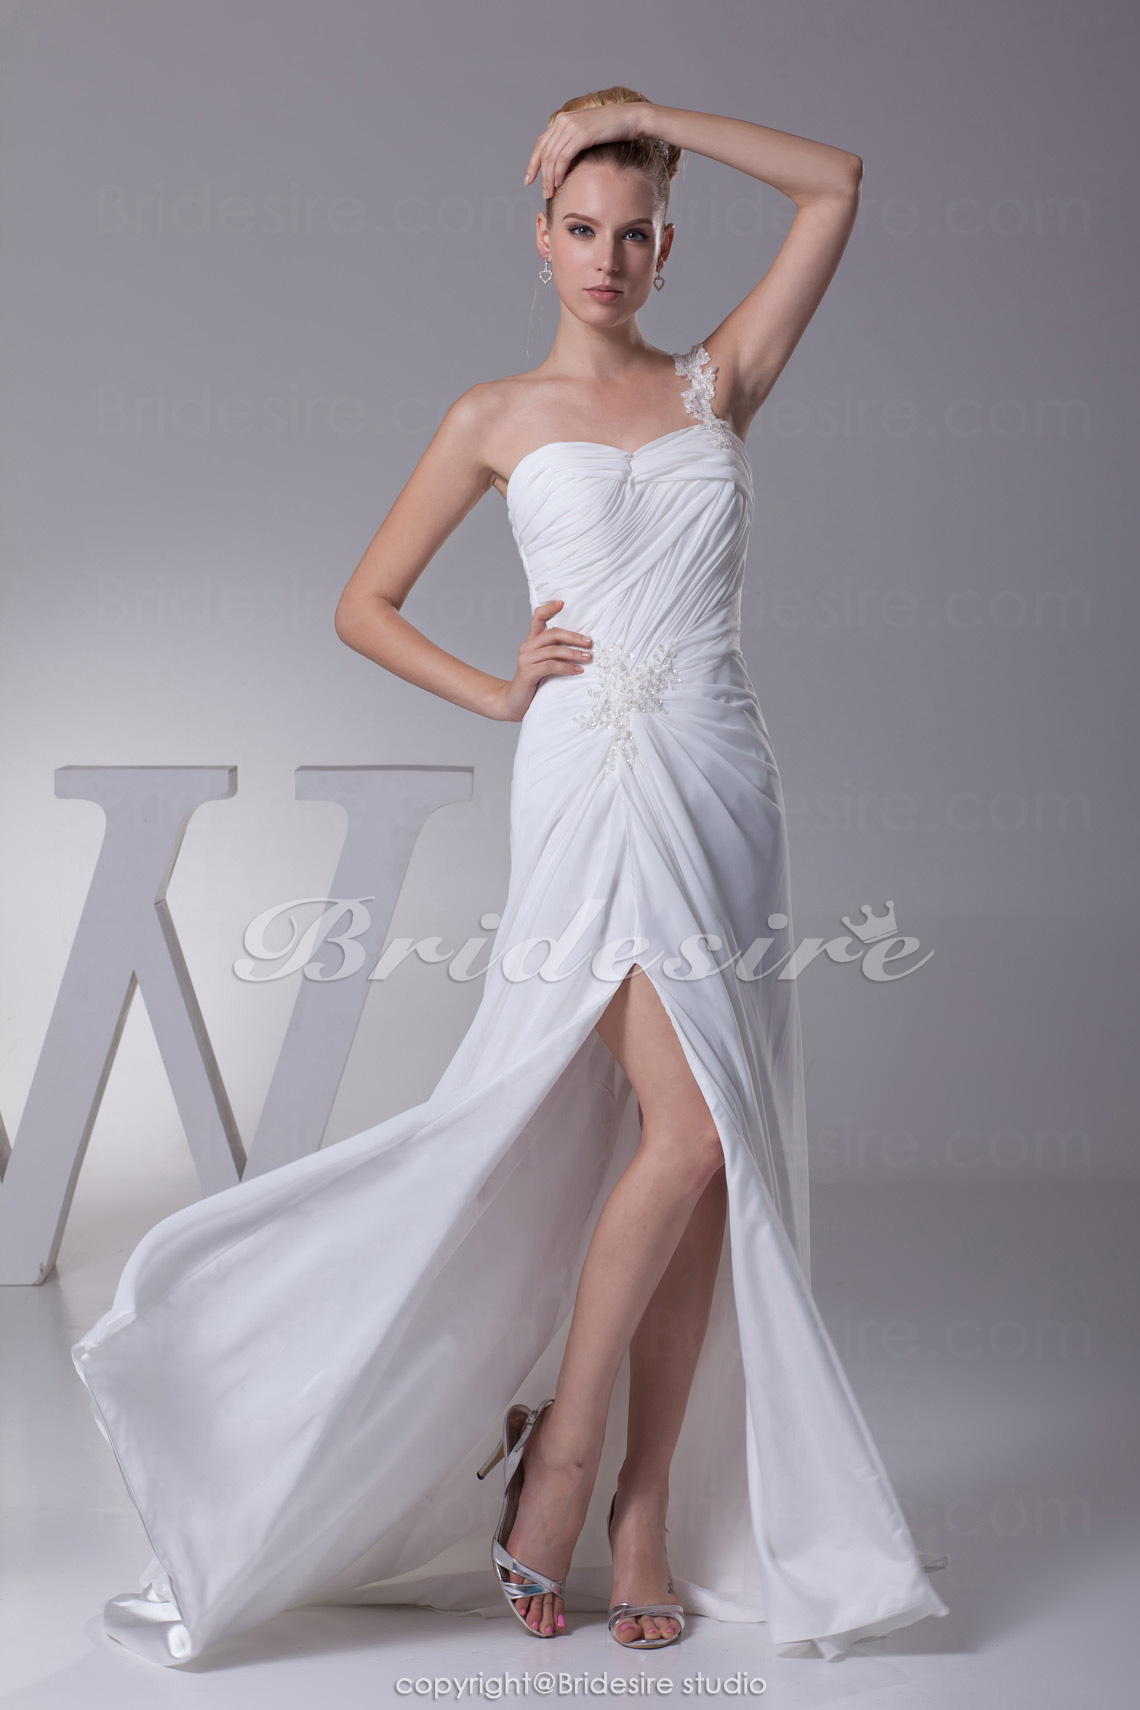 Sheath/Column One Shoulder Court Train Sleeveless Chiffon Weddin